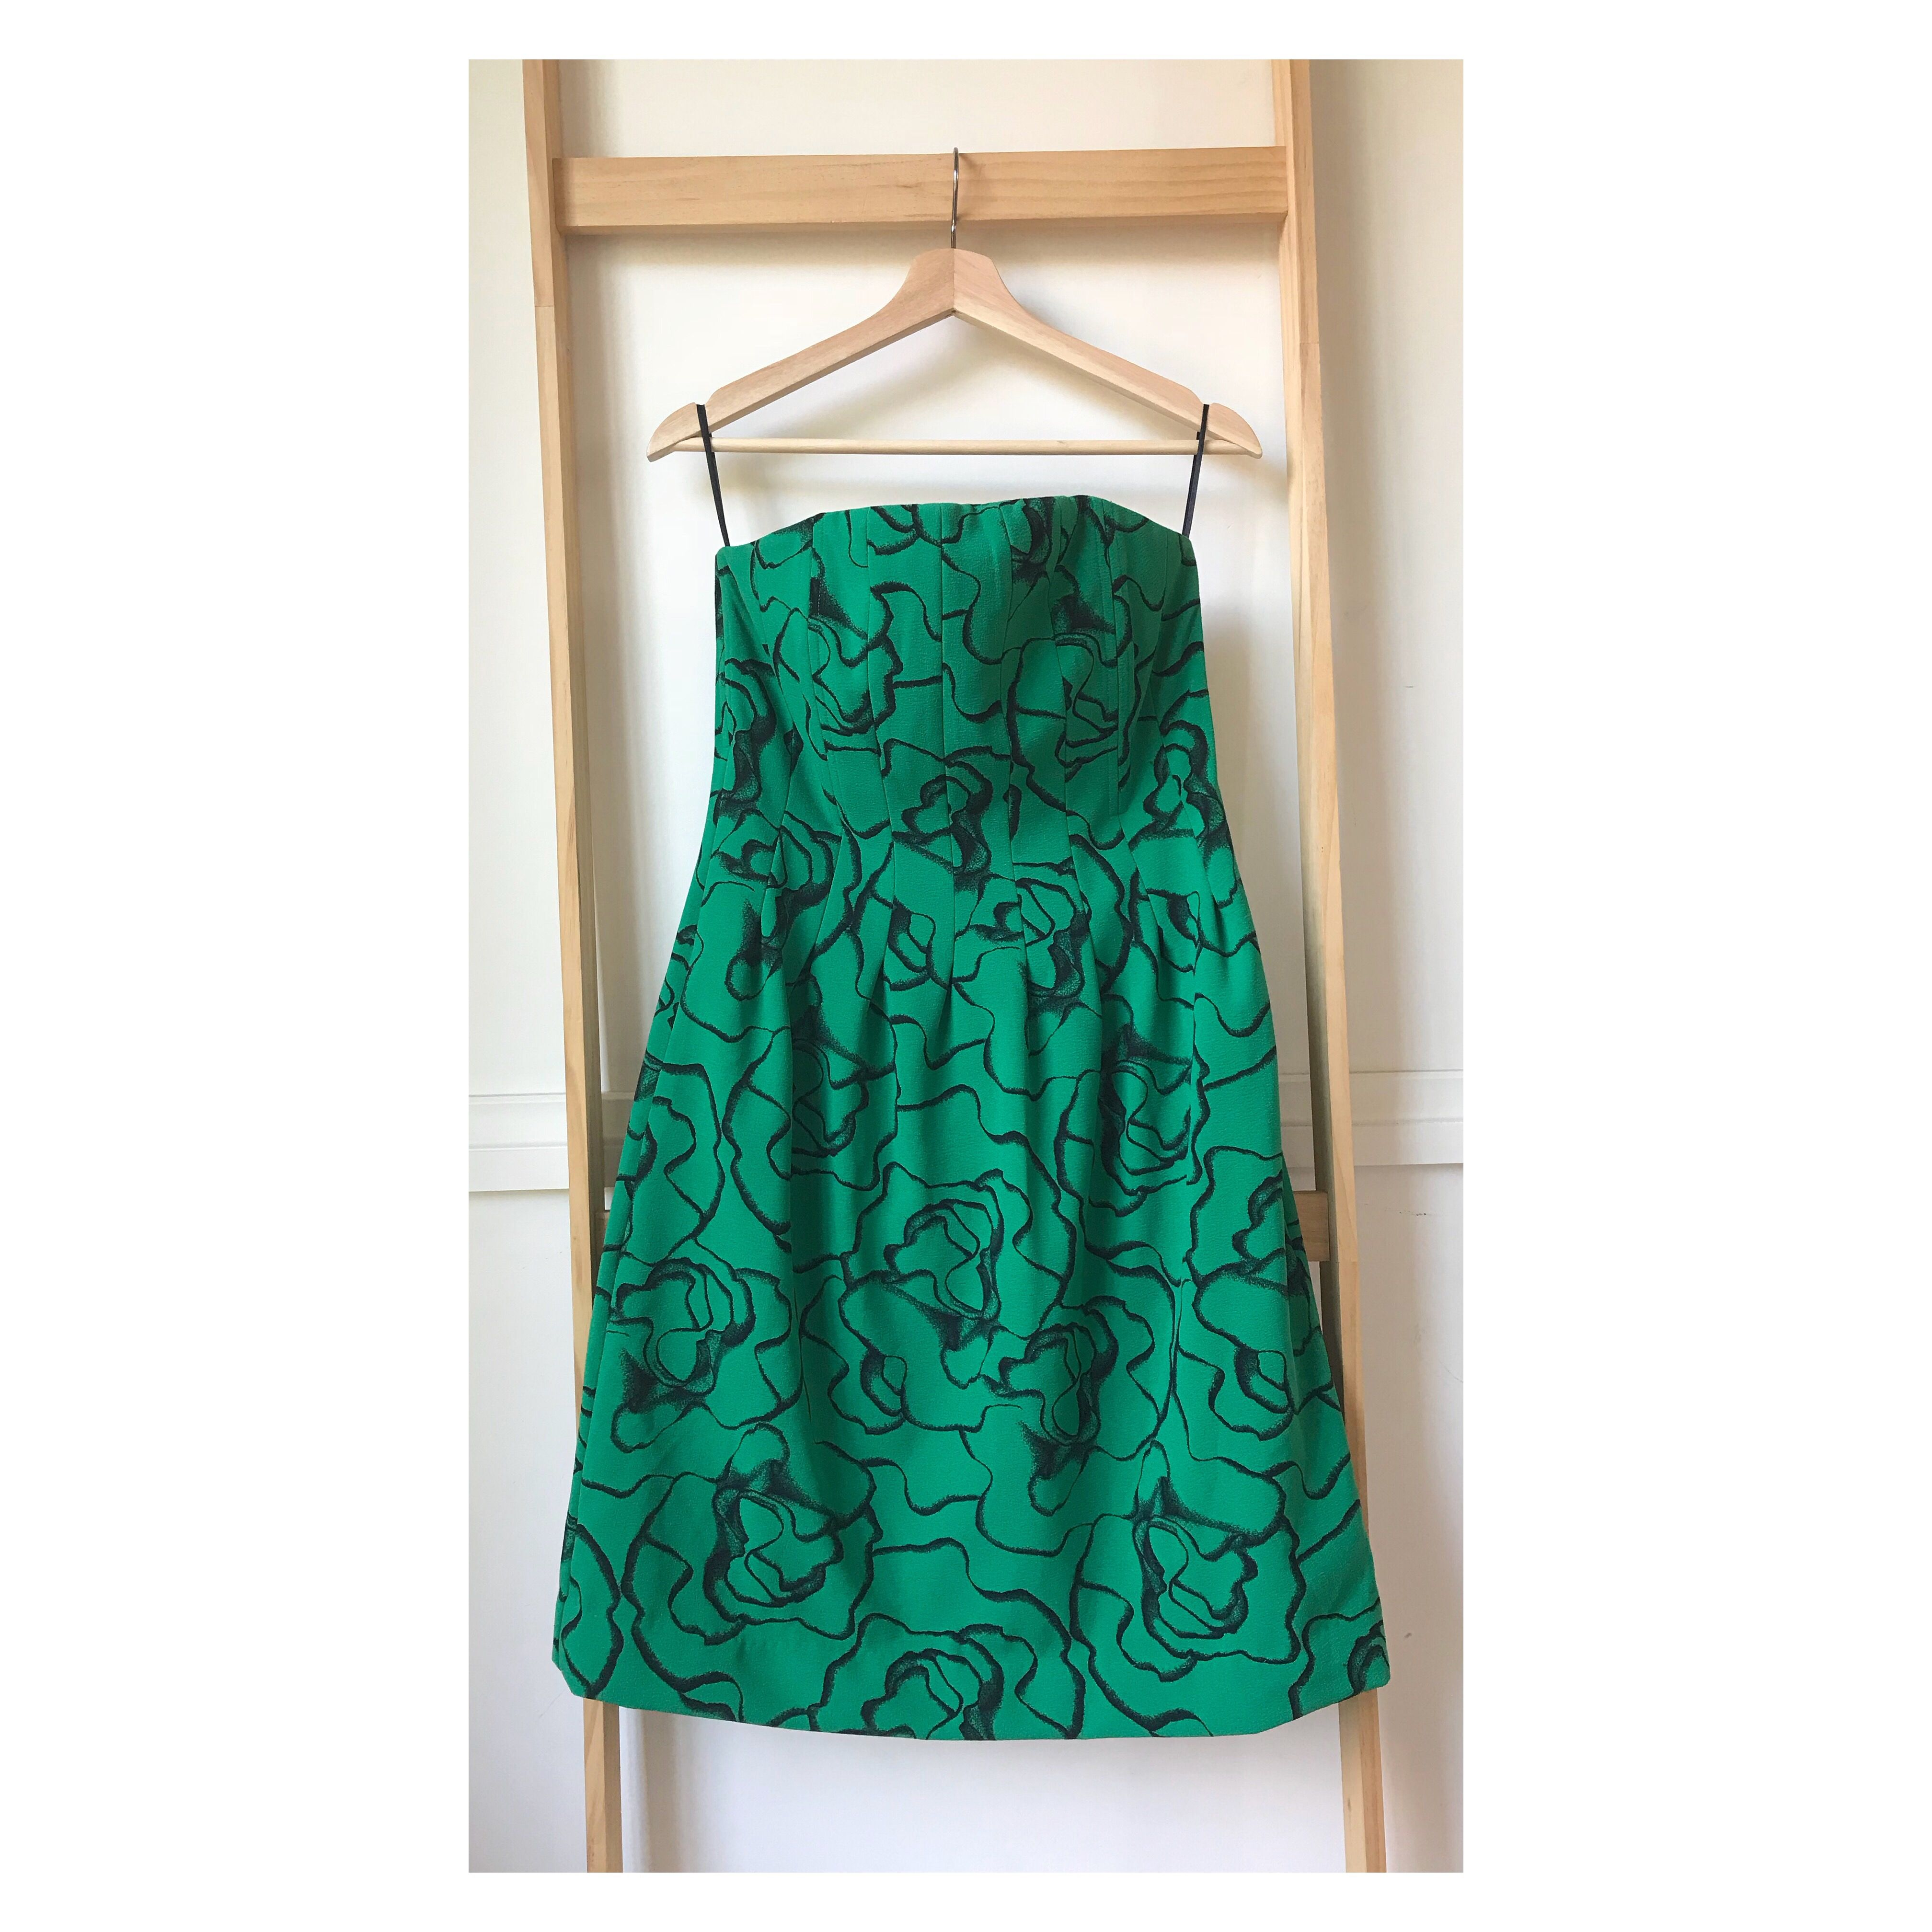 Size 10: Strapless Green dress with stunning intricate black floral print AVAILABLE